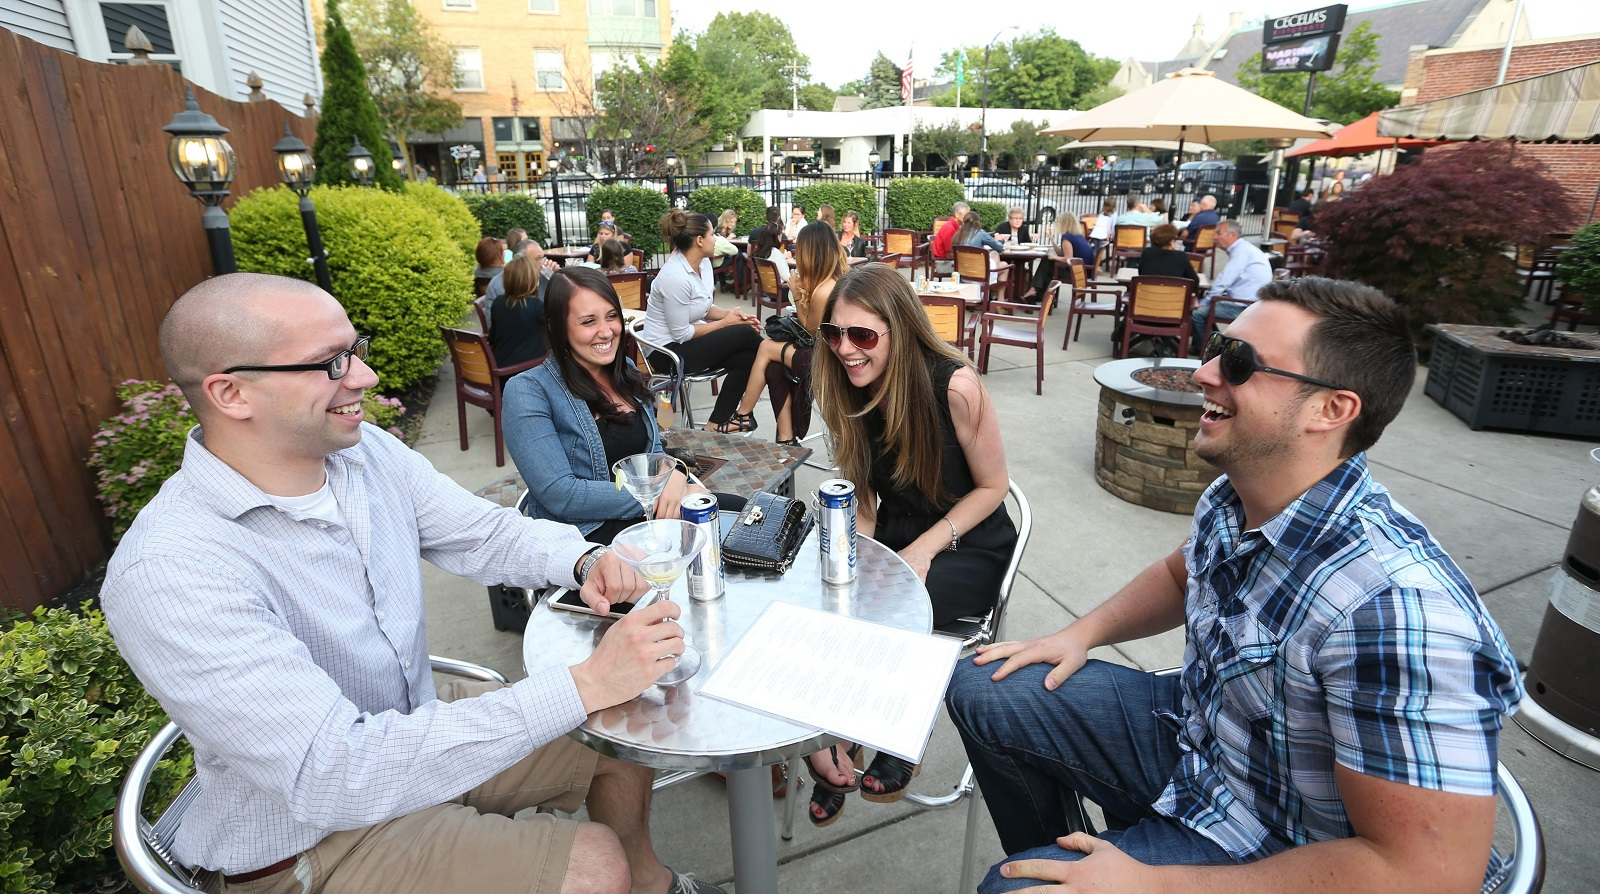 Eating, drinking and hanging out on patios in Western New York is a fine way to spend an evening. (Sharon Cantillon/Buffalo News)